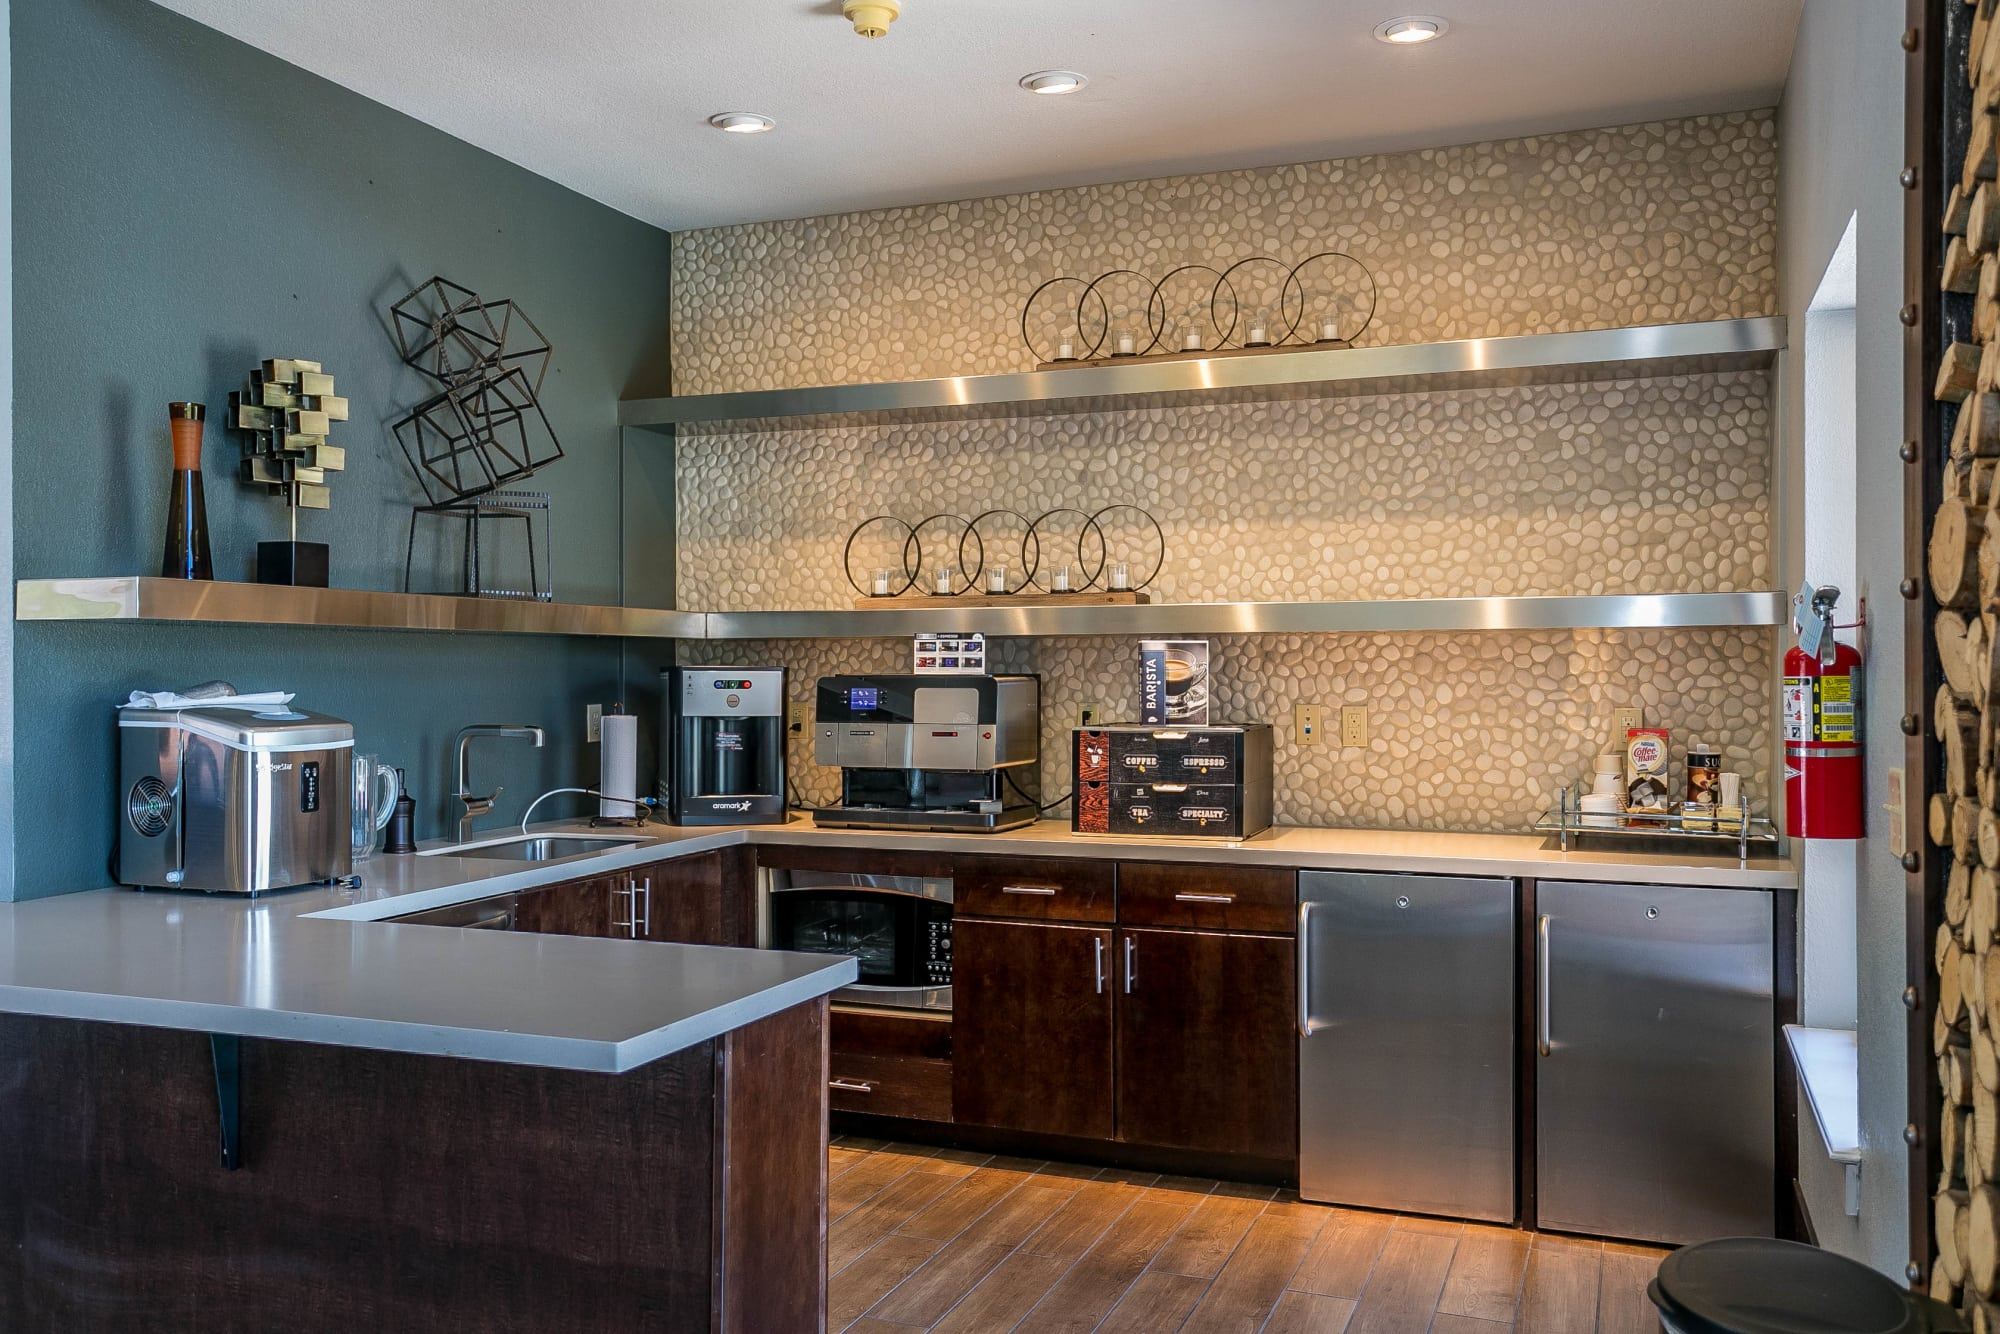 The clubhouse kitchen at The Crossings at Bear Creek Apartments in Lakewood, Colorado